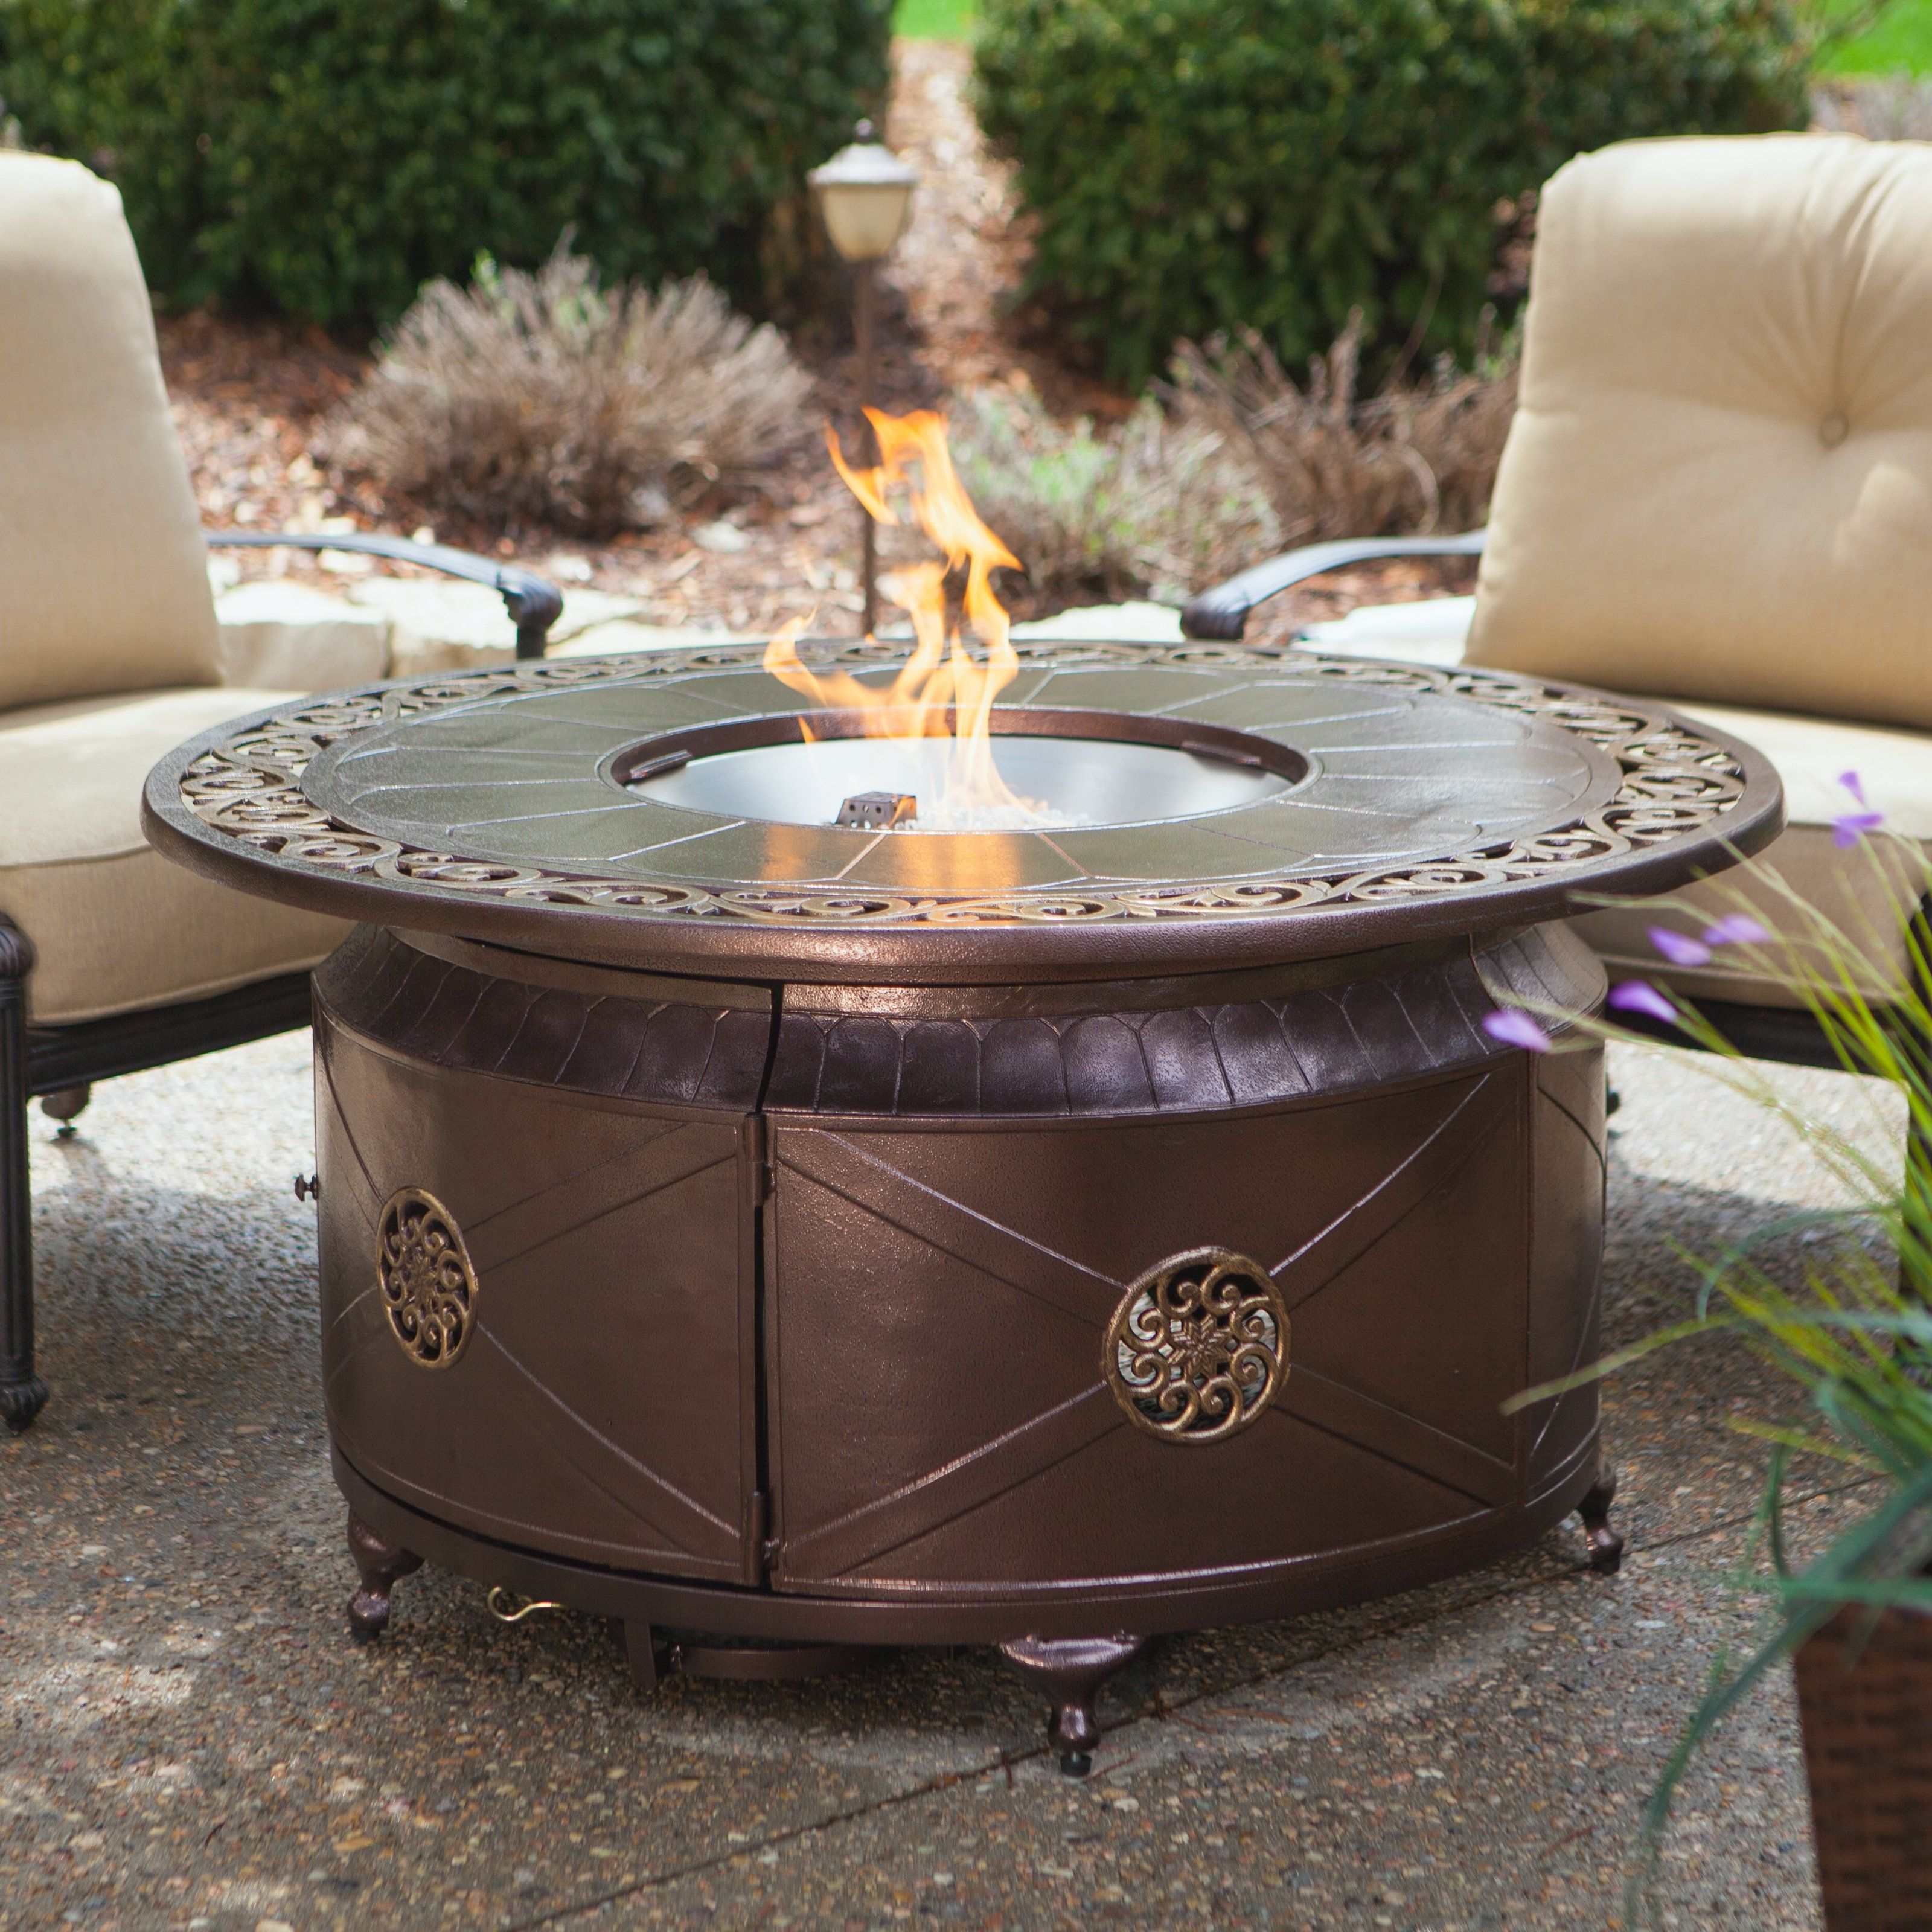 I Found A Manhattan Round Fire Pit Table 42 Round Fire Pit Table Fire Pit Table Fire Pit Table Top